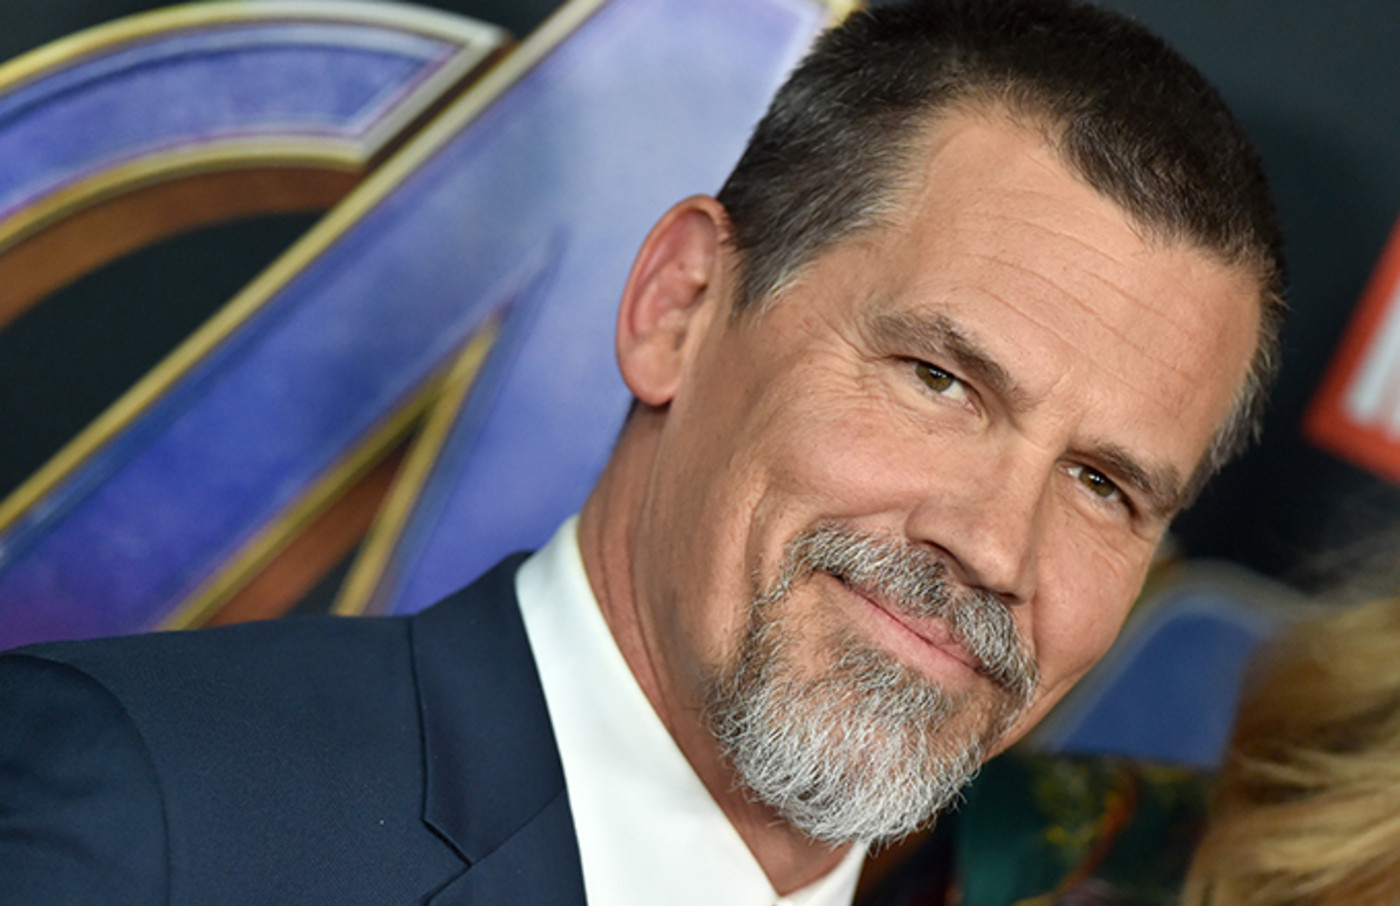 Josh Brolin, who knows full well who would win.